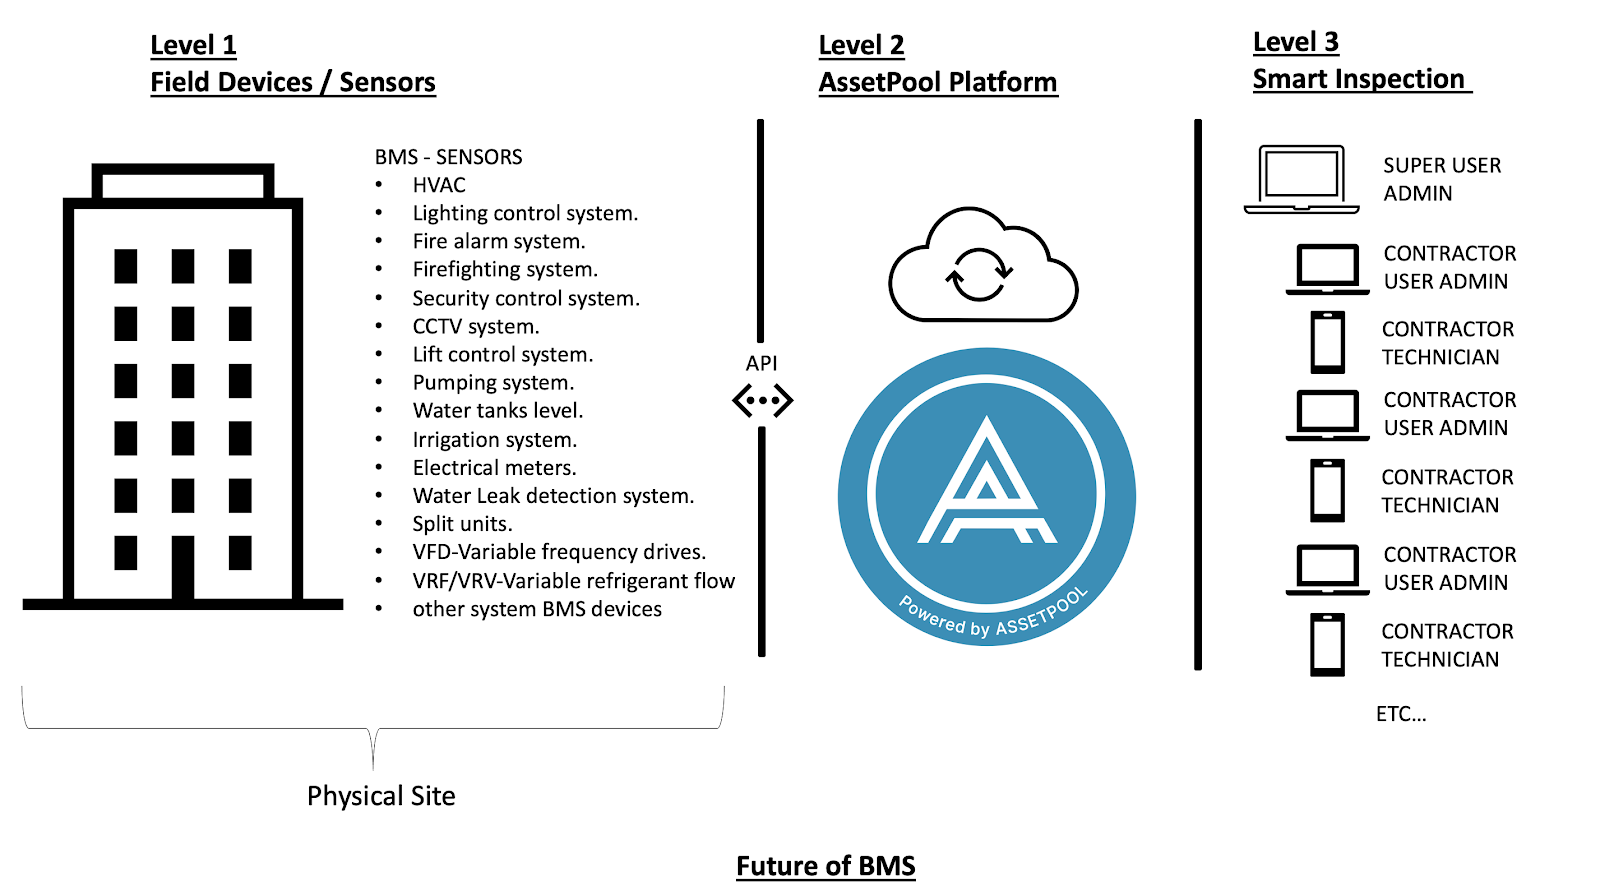 Visual of the future of Building Management Systems